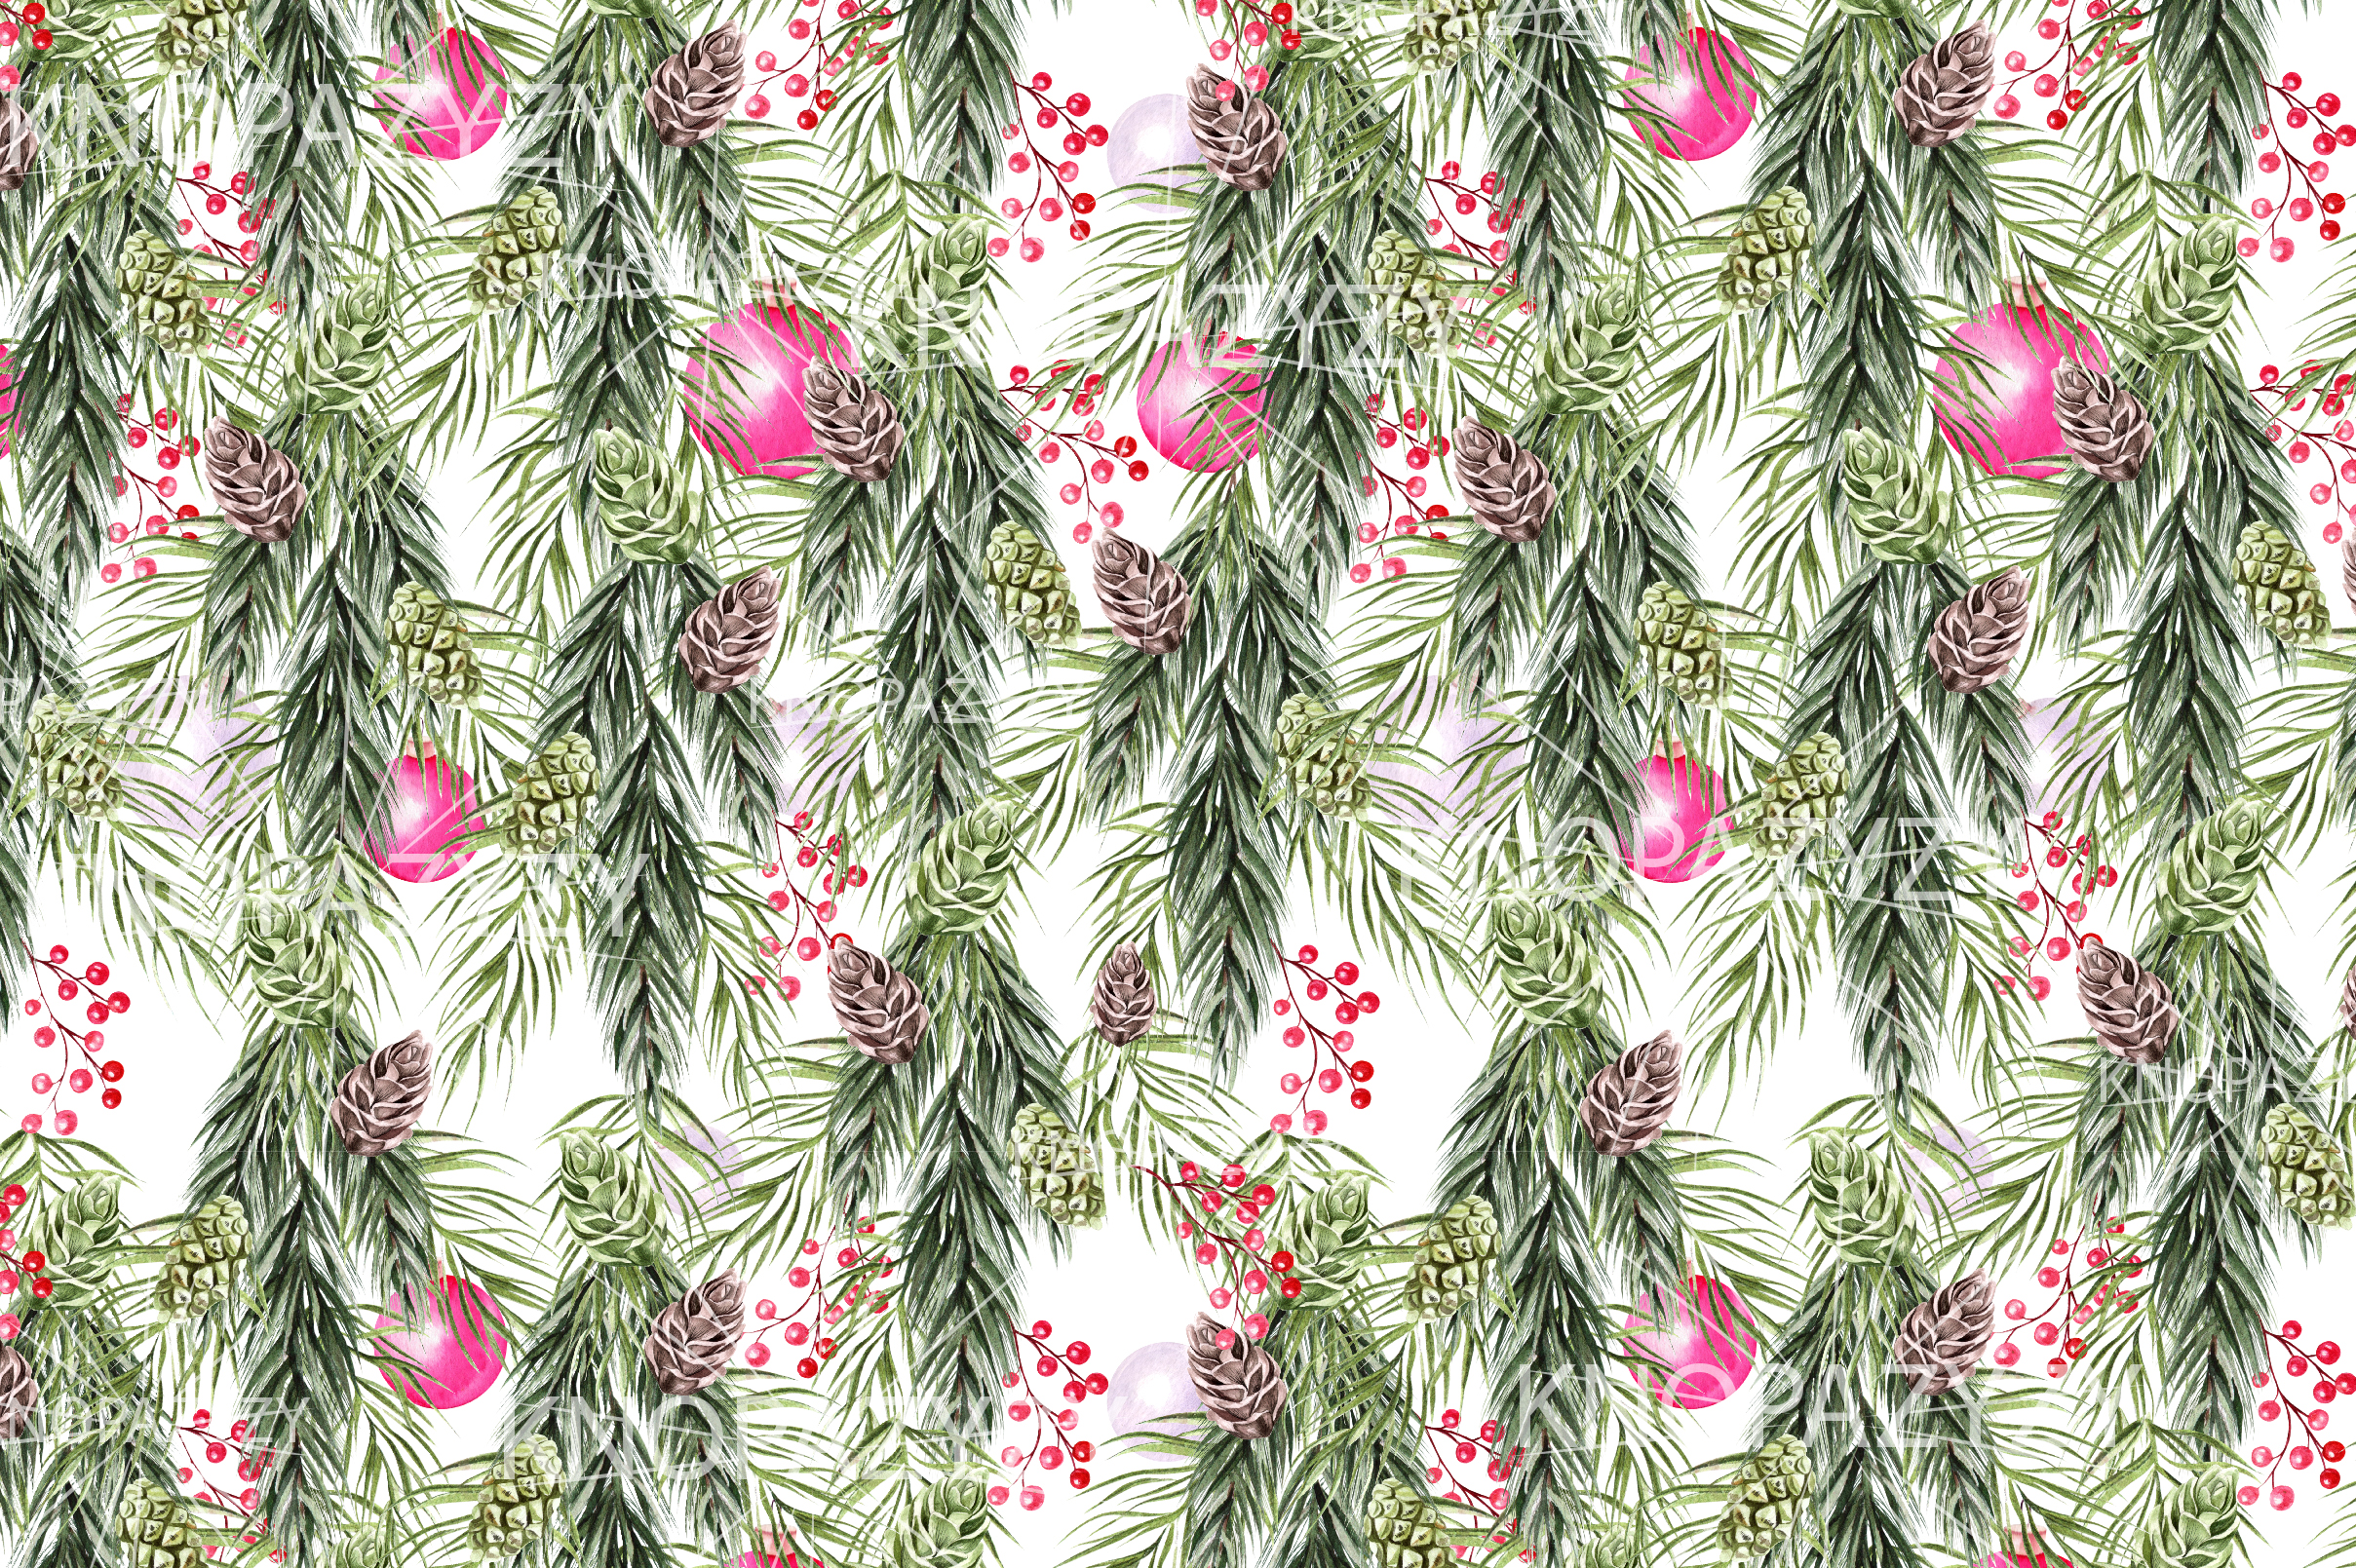 Hand Drawn Watercolor Christmas 13 Patterns example image 9